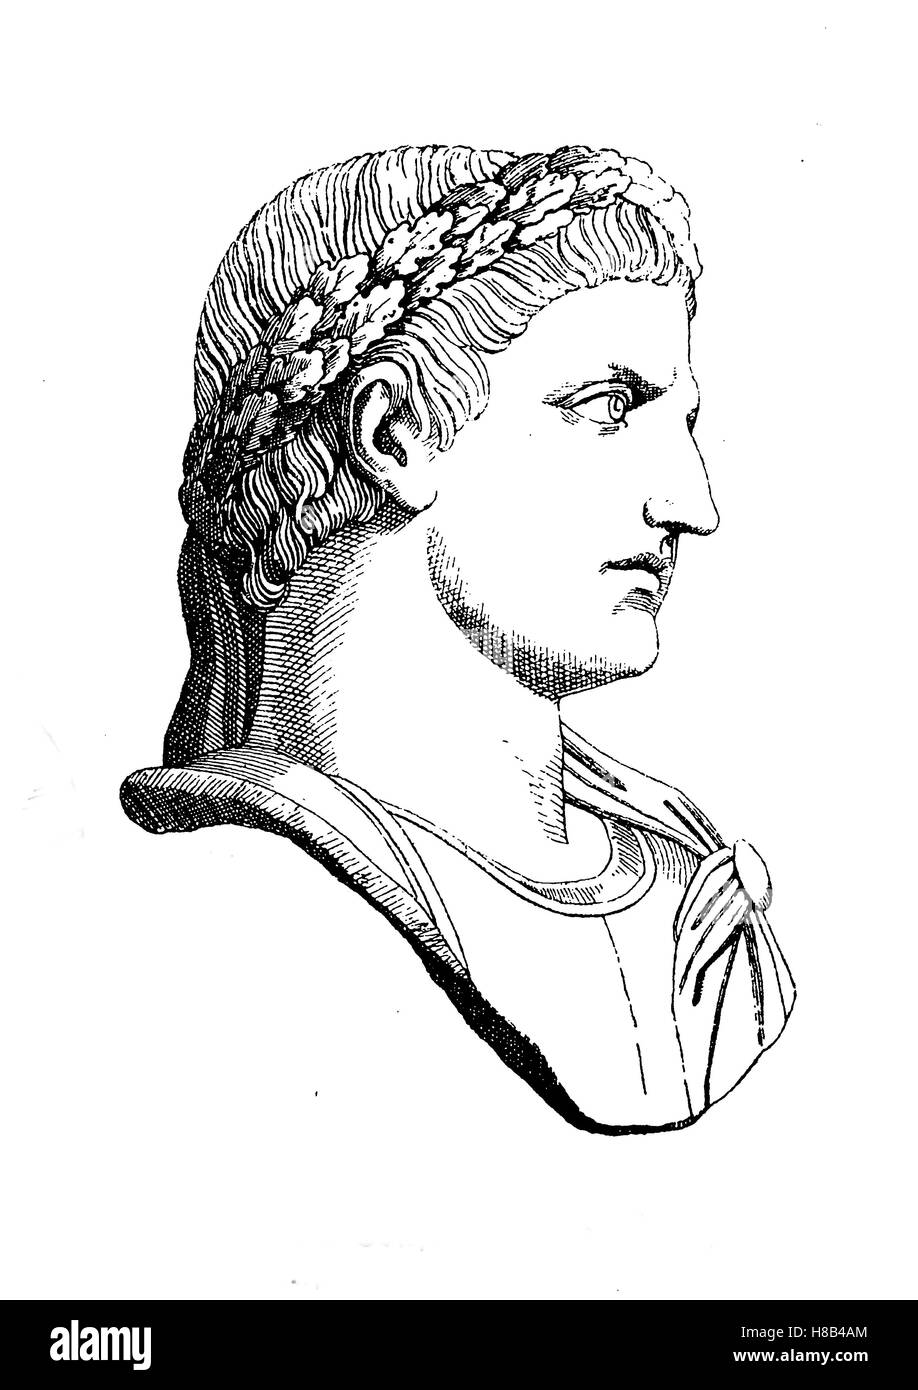 The Roman Emperor Constantine the Great, History of fashion, costume story - Stock Image